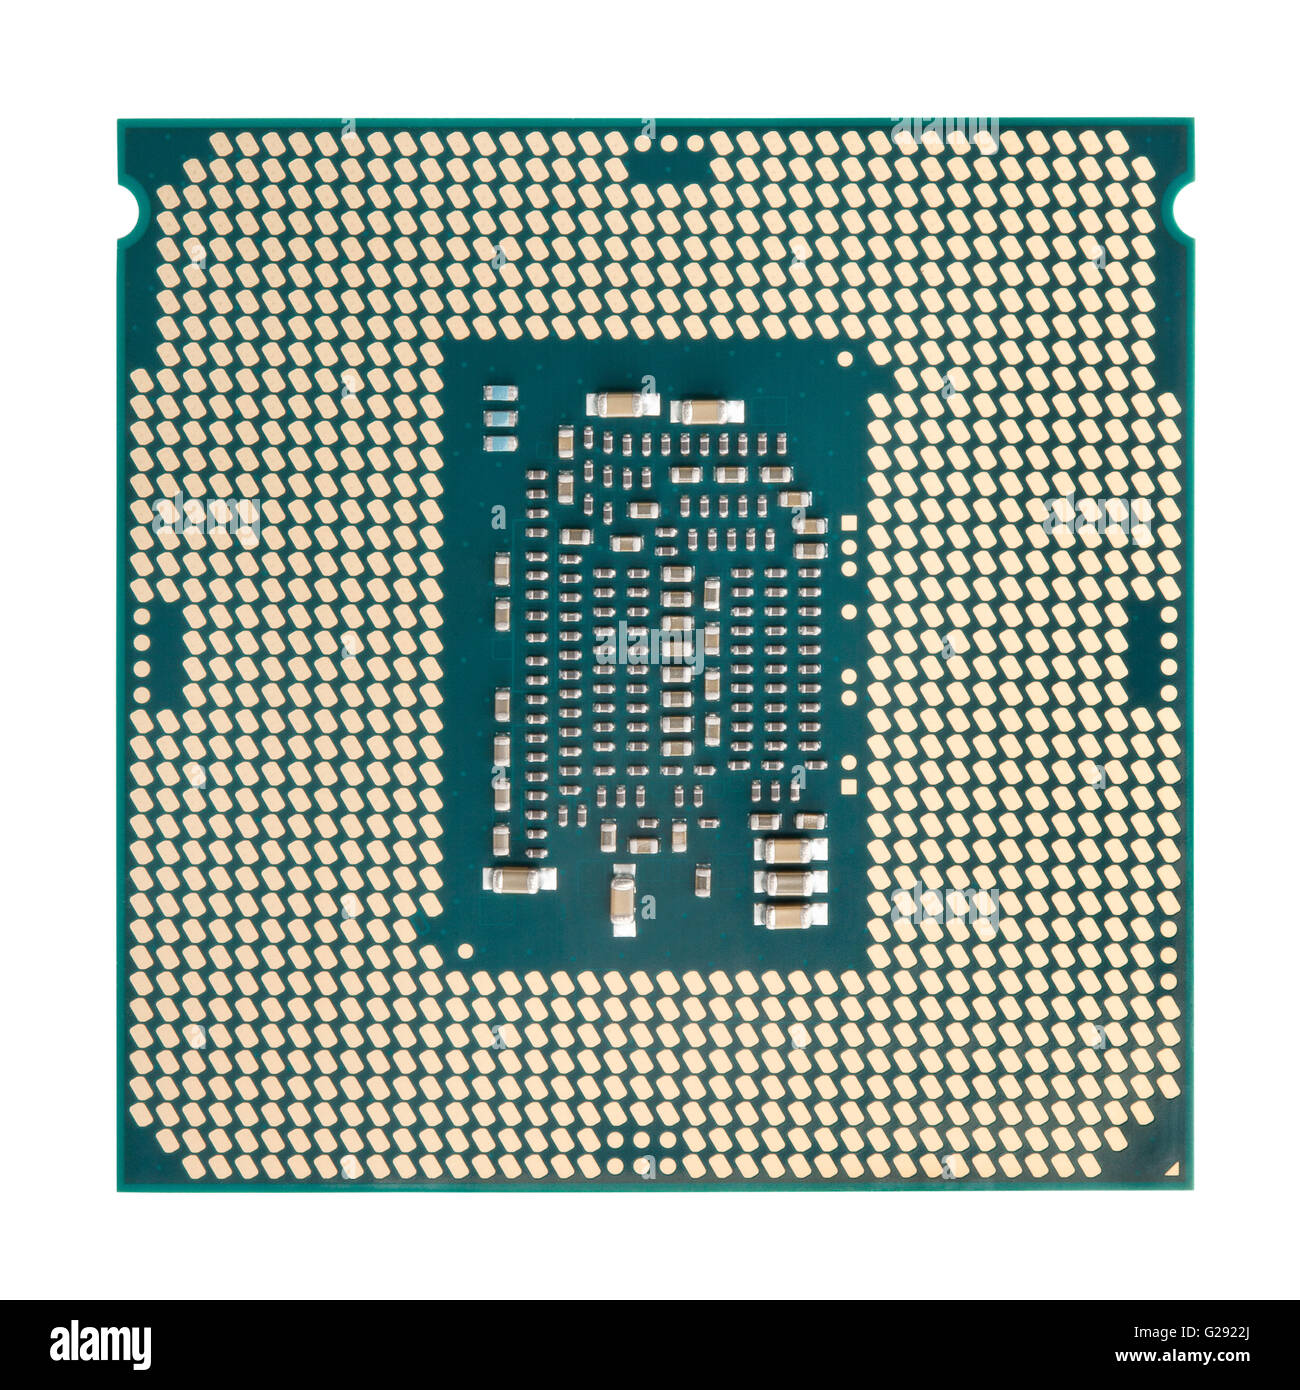 cpu isolated - Stock Image